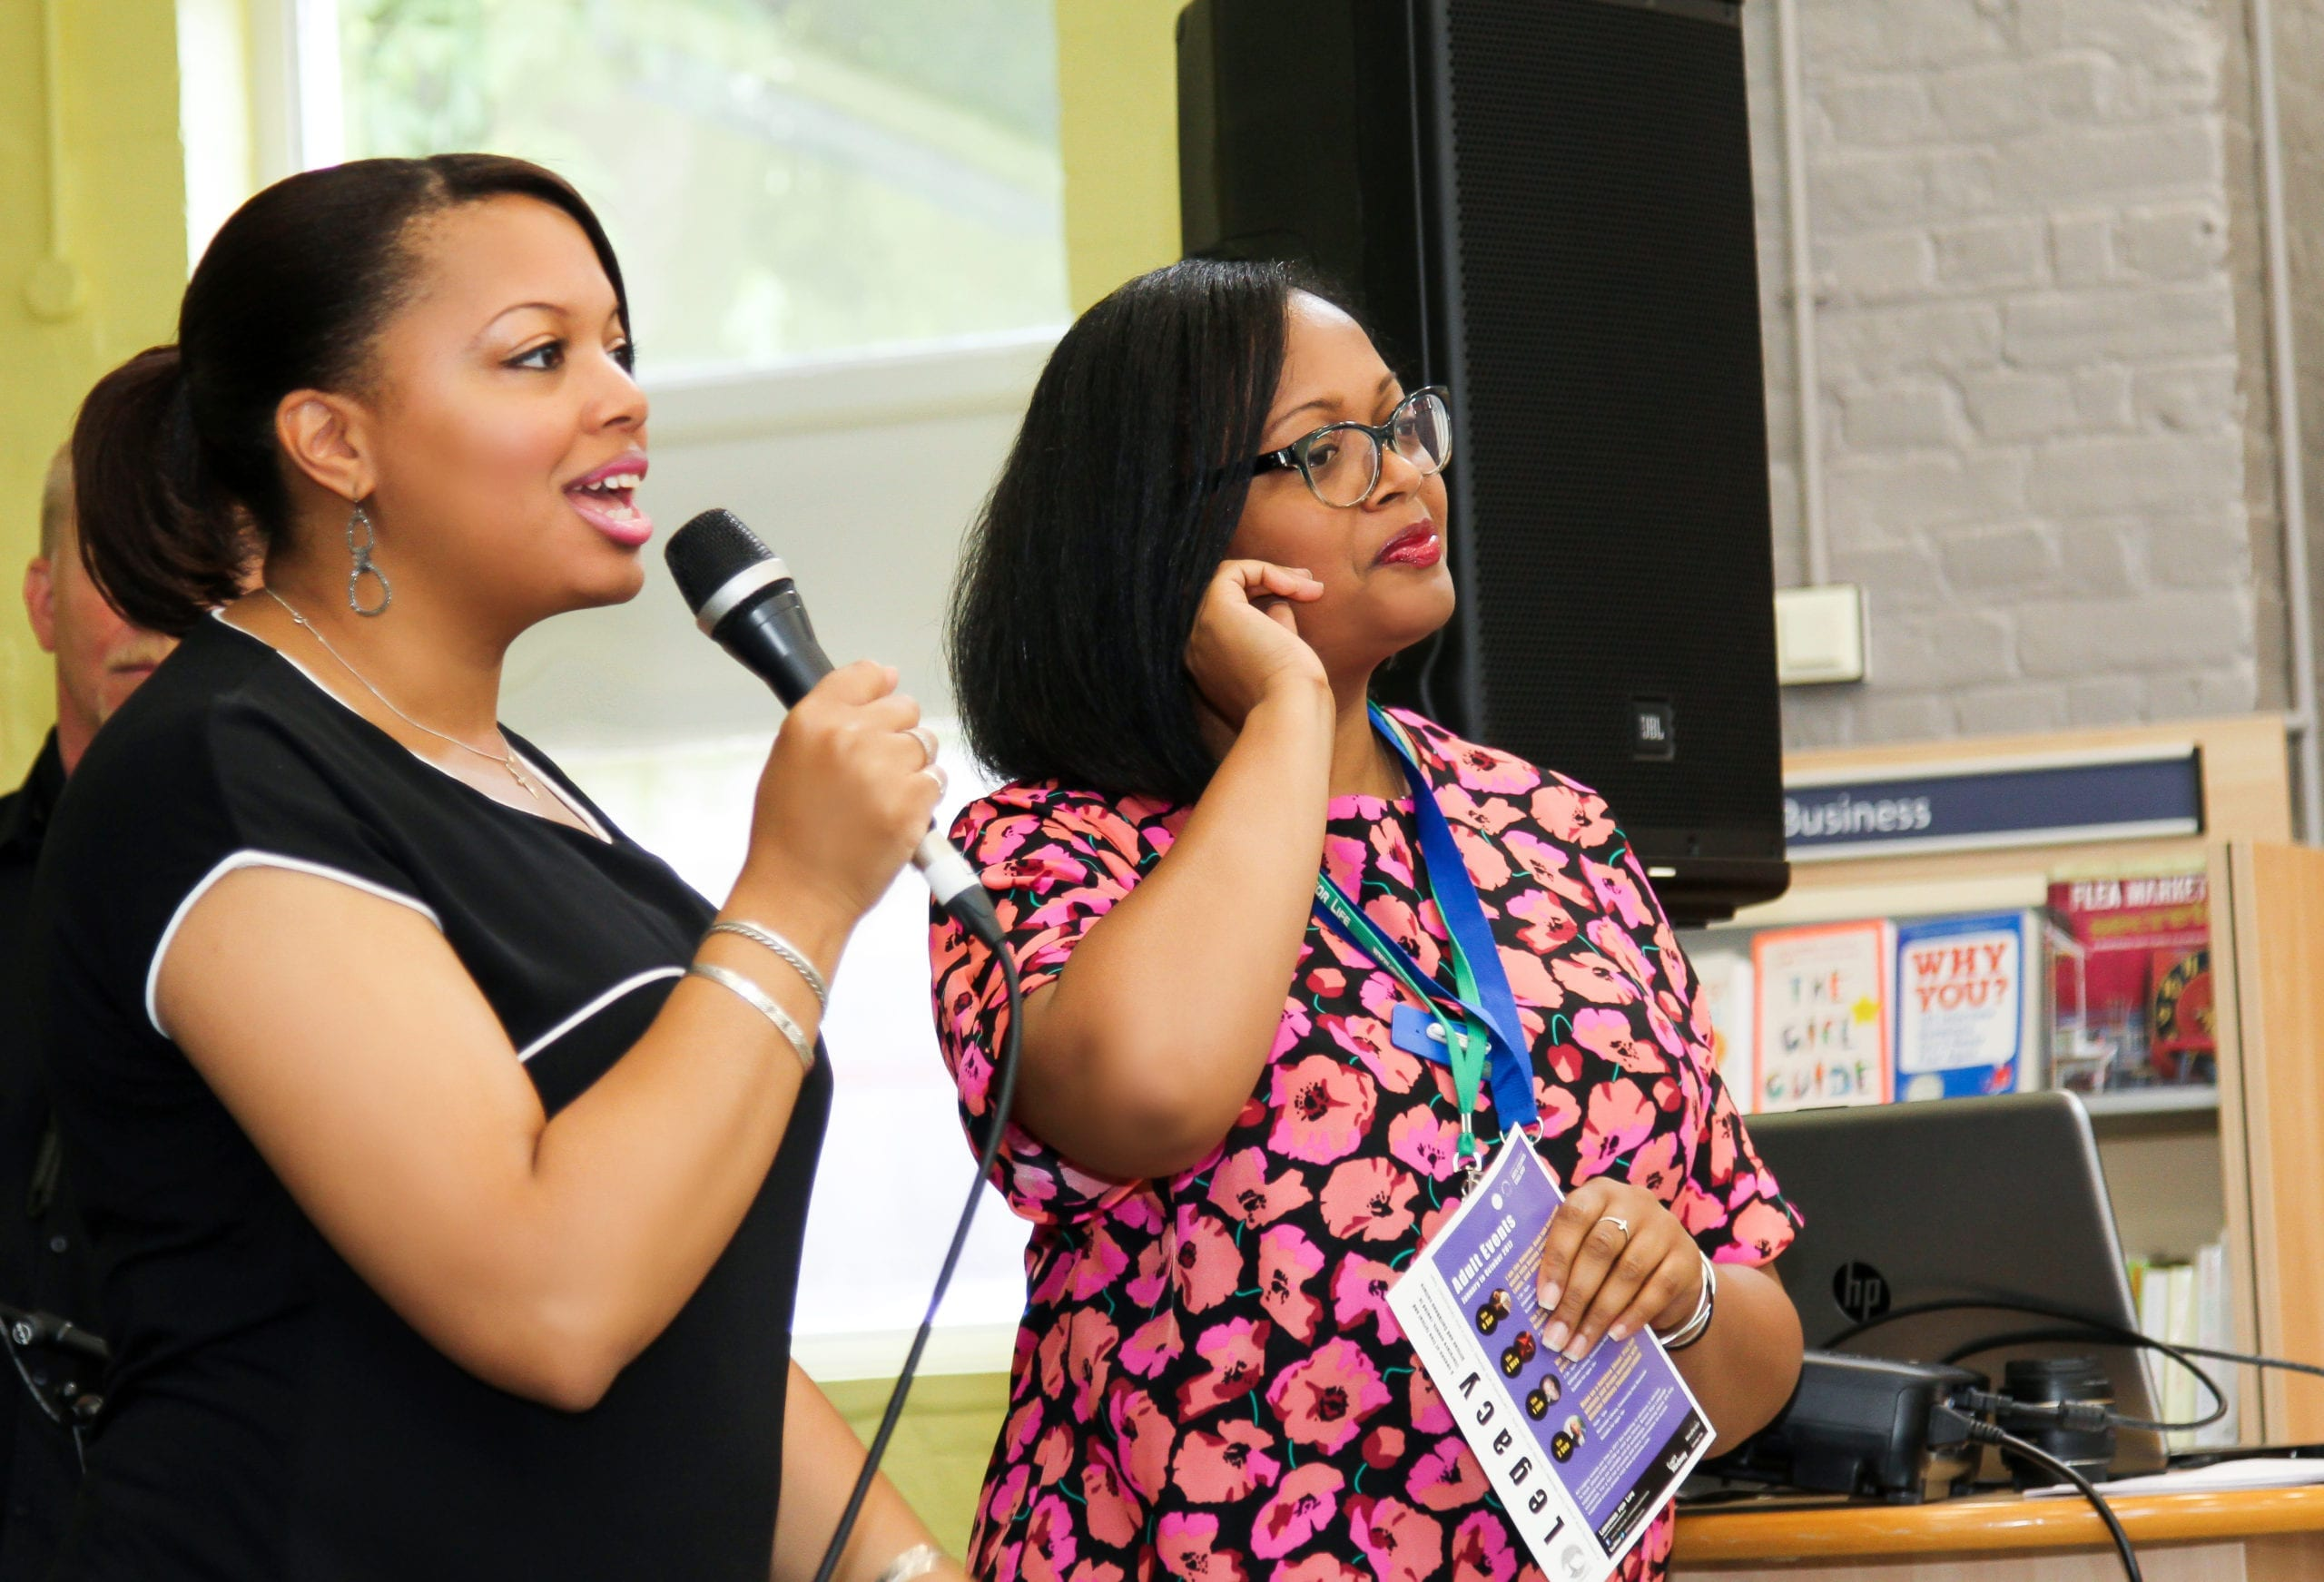 Two Lyrici Arts staff members addressing an audience at an event